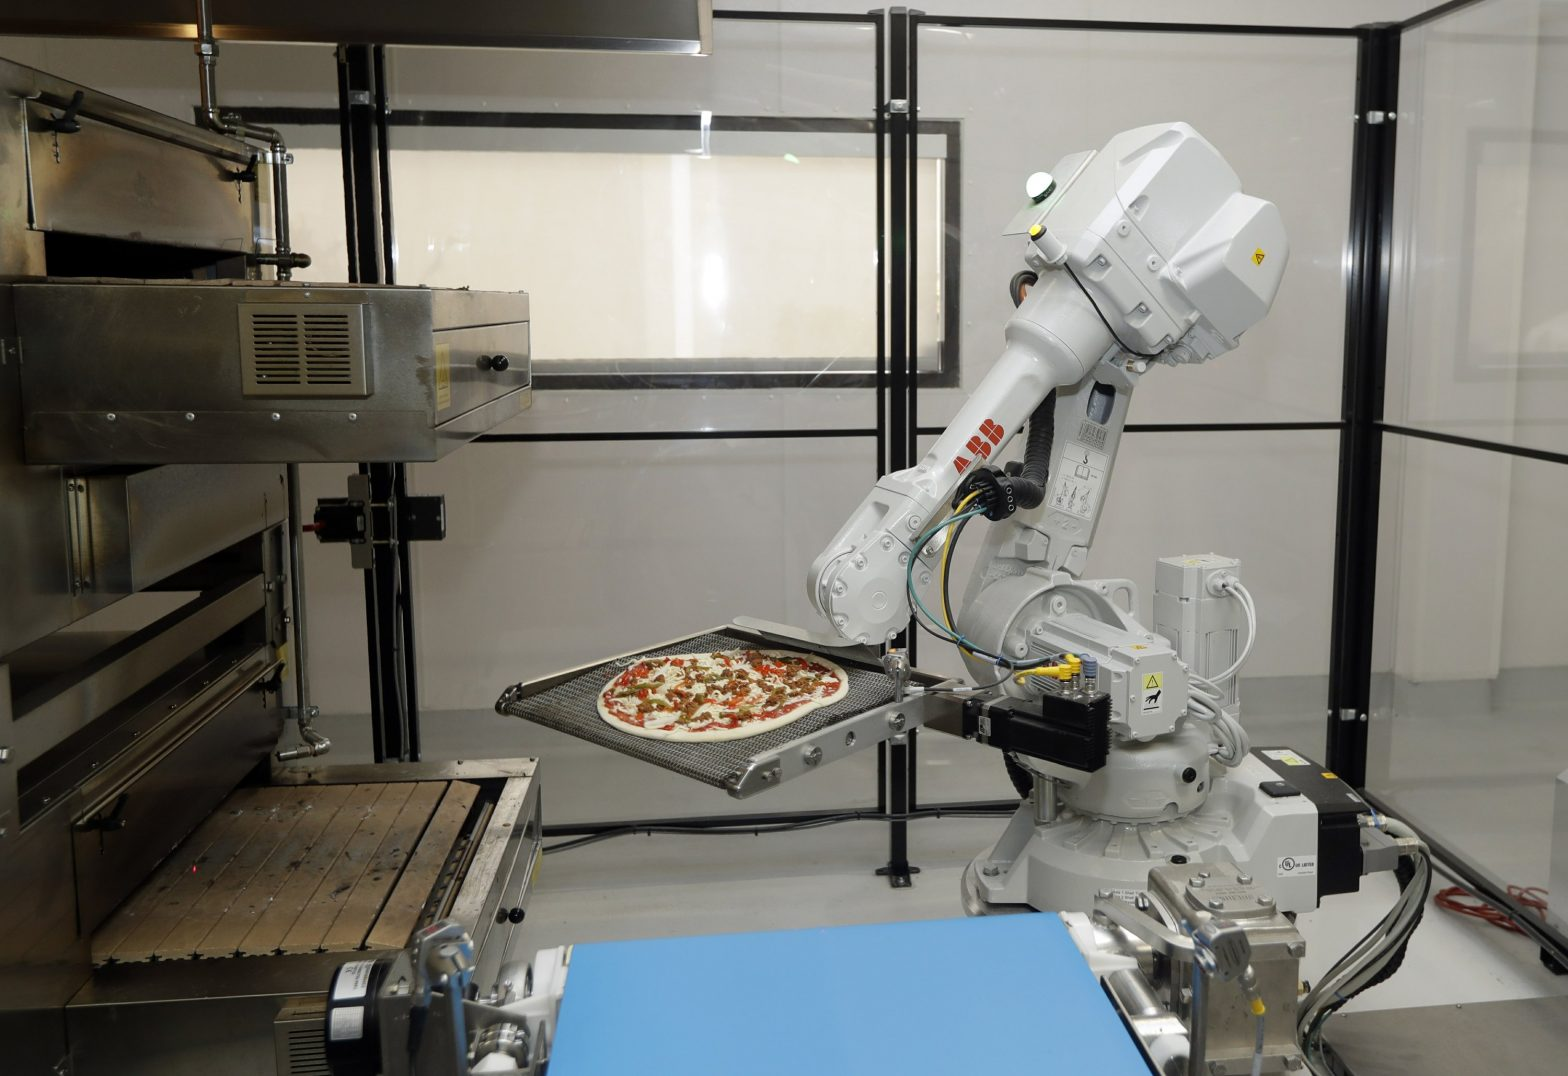 Robots out of work as automated businesses close in Bay Area – The Associated Press